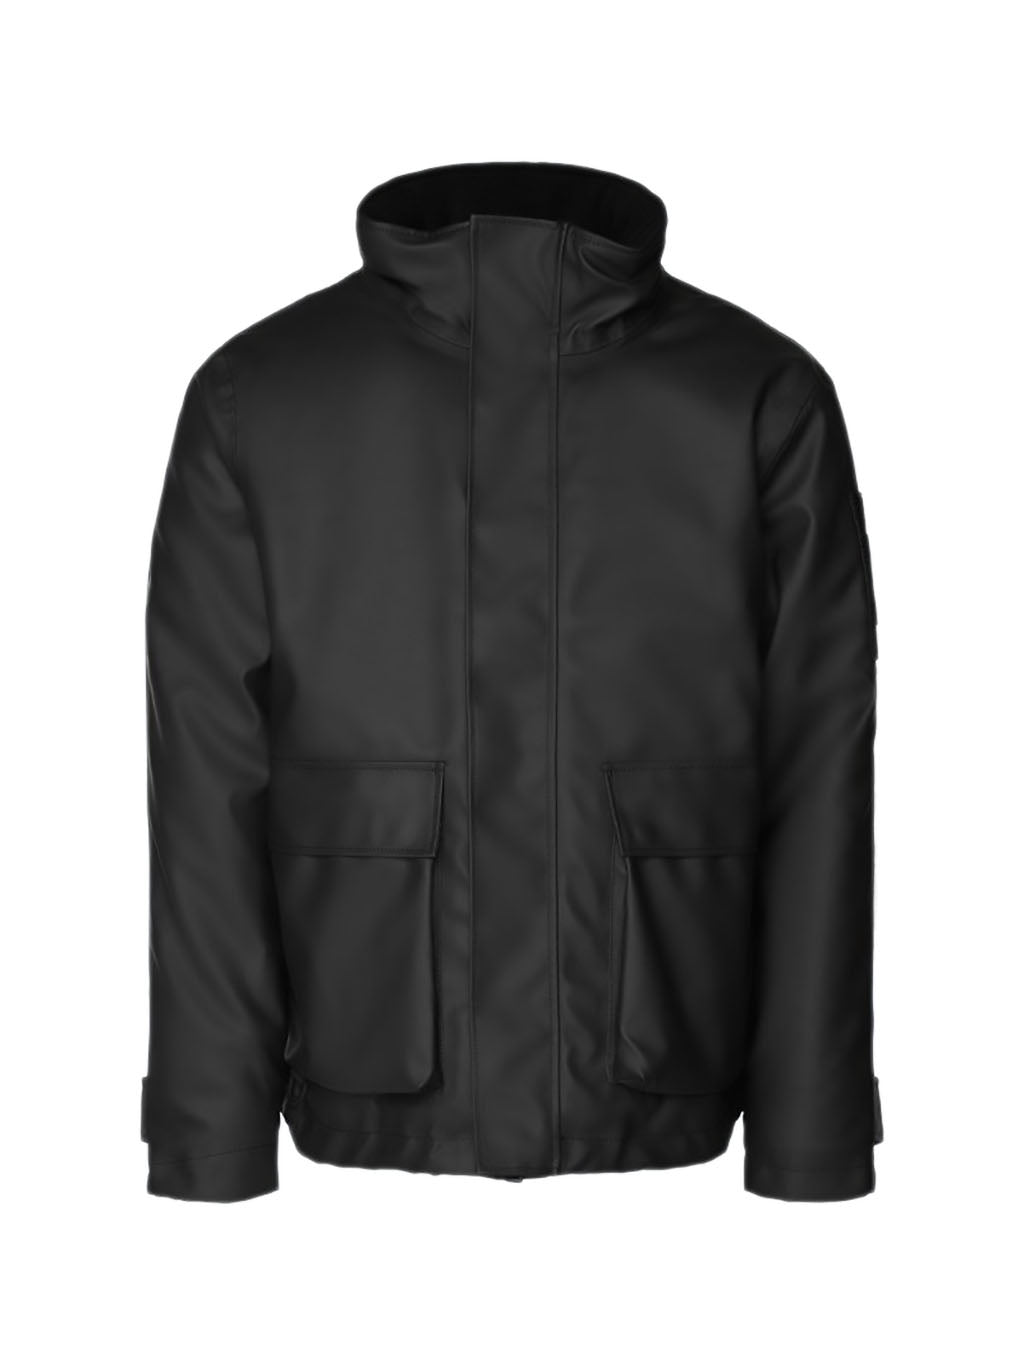 Black Waterproof Glacial Jacket